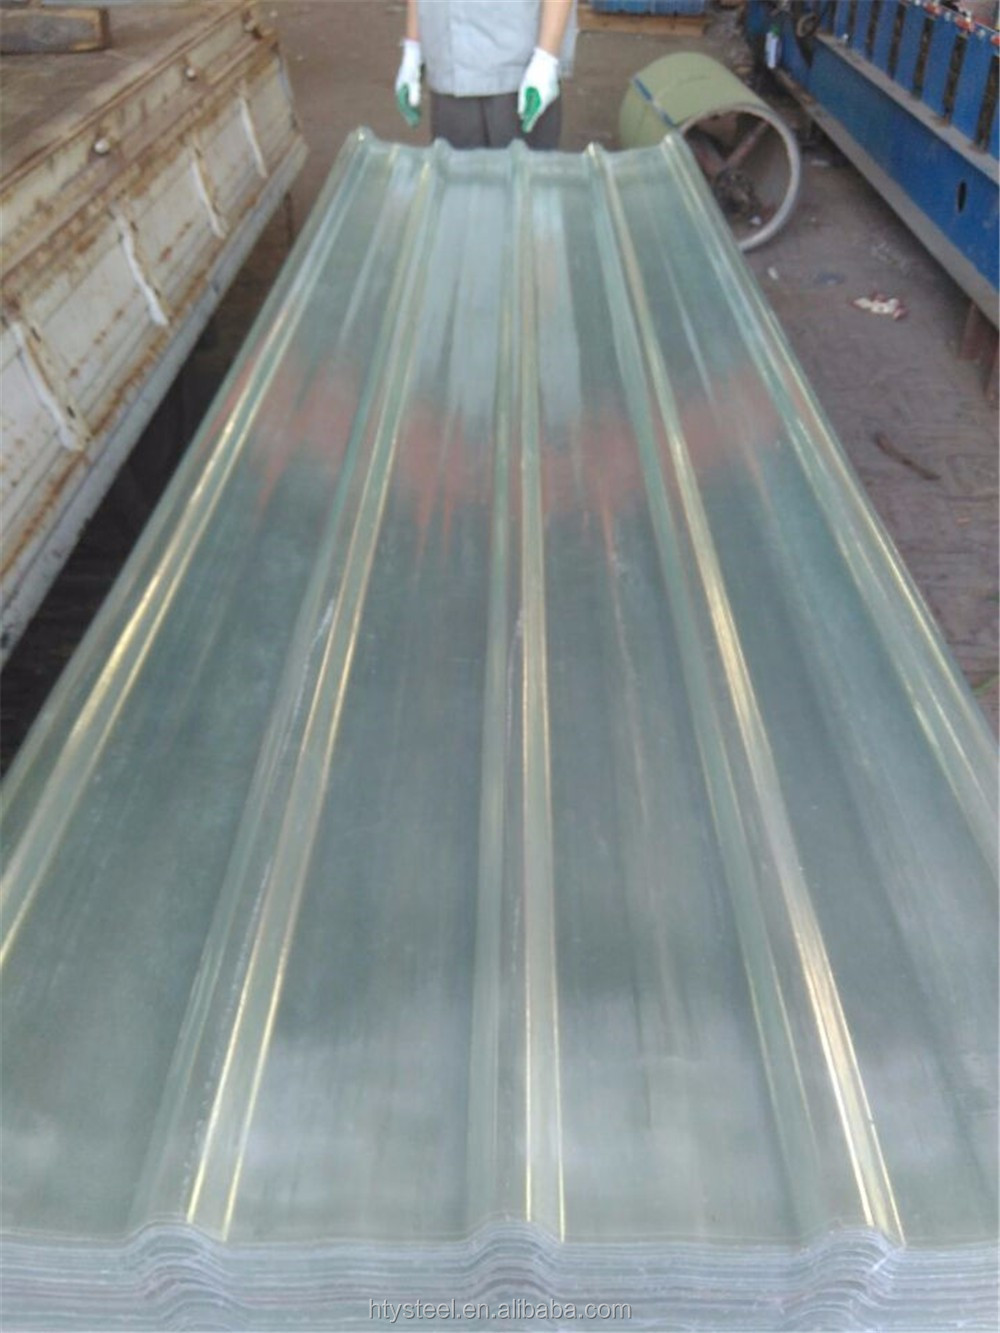 polycarbonate transparent corrugated plastic roofing sheet